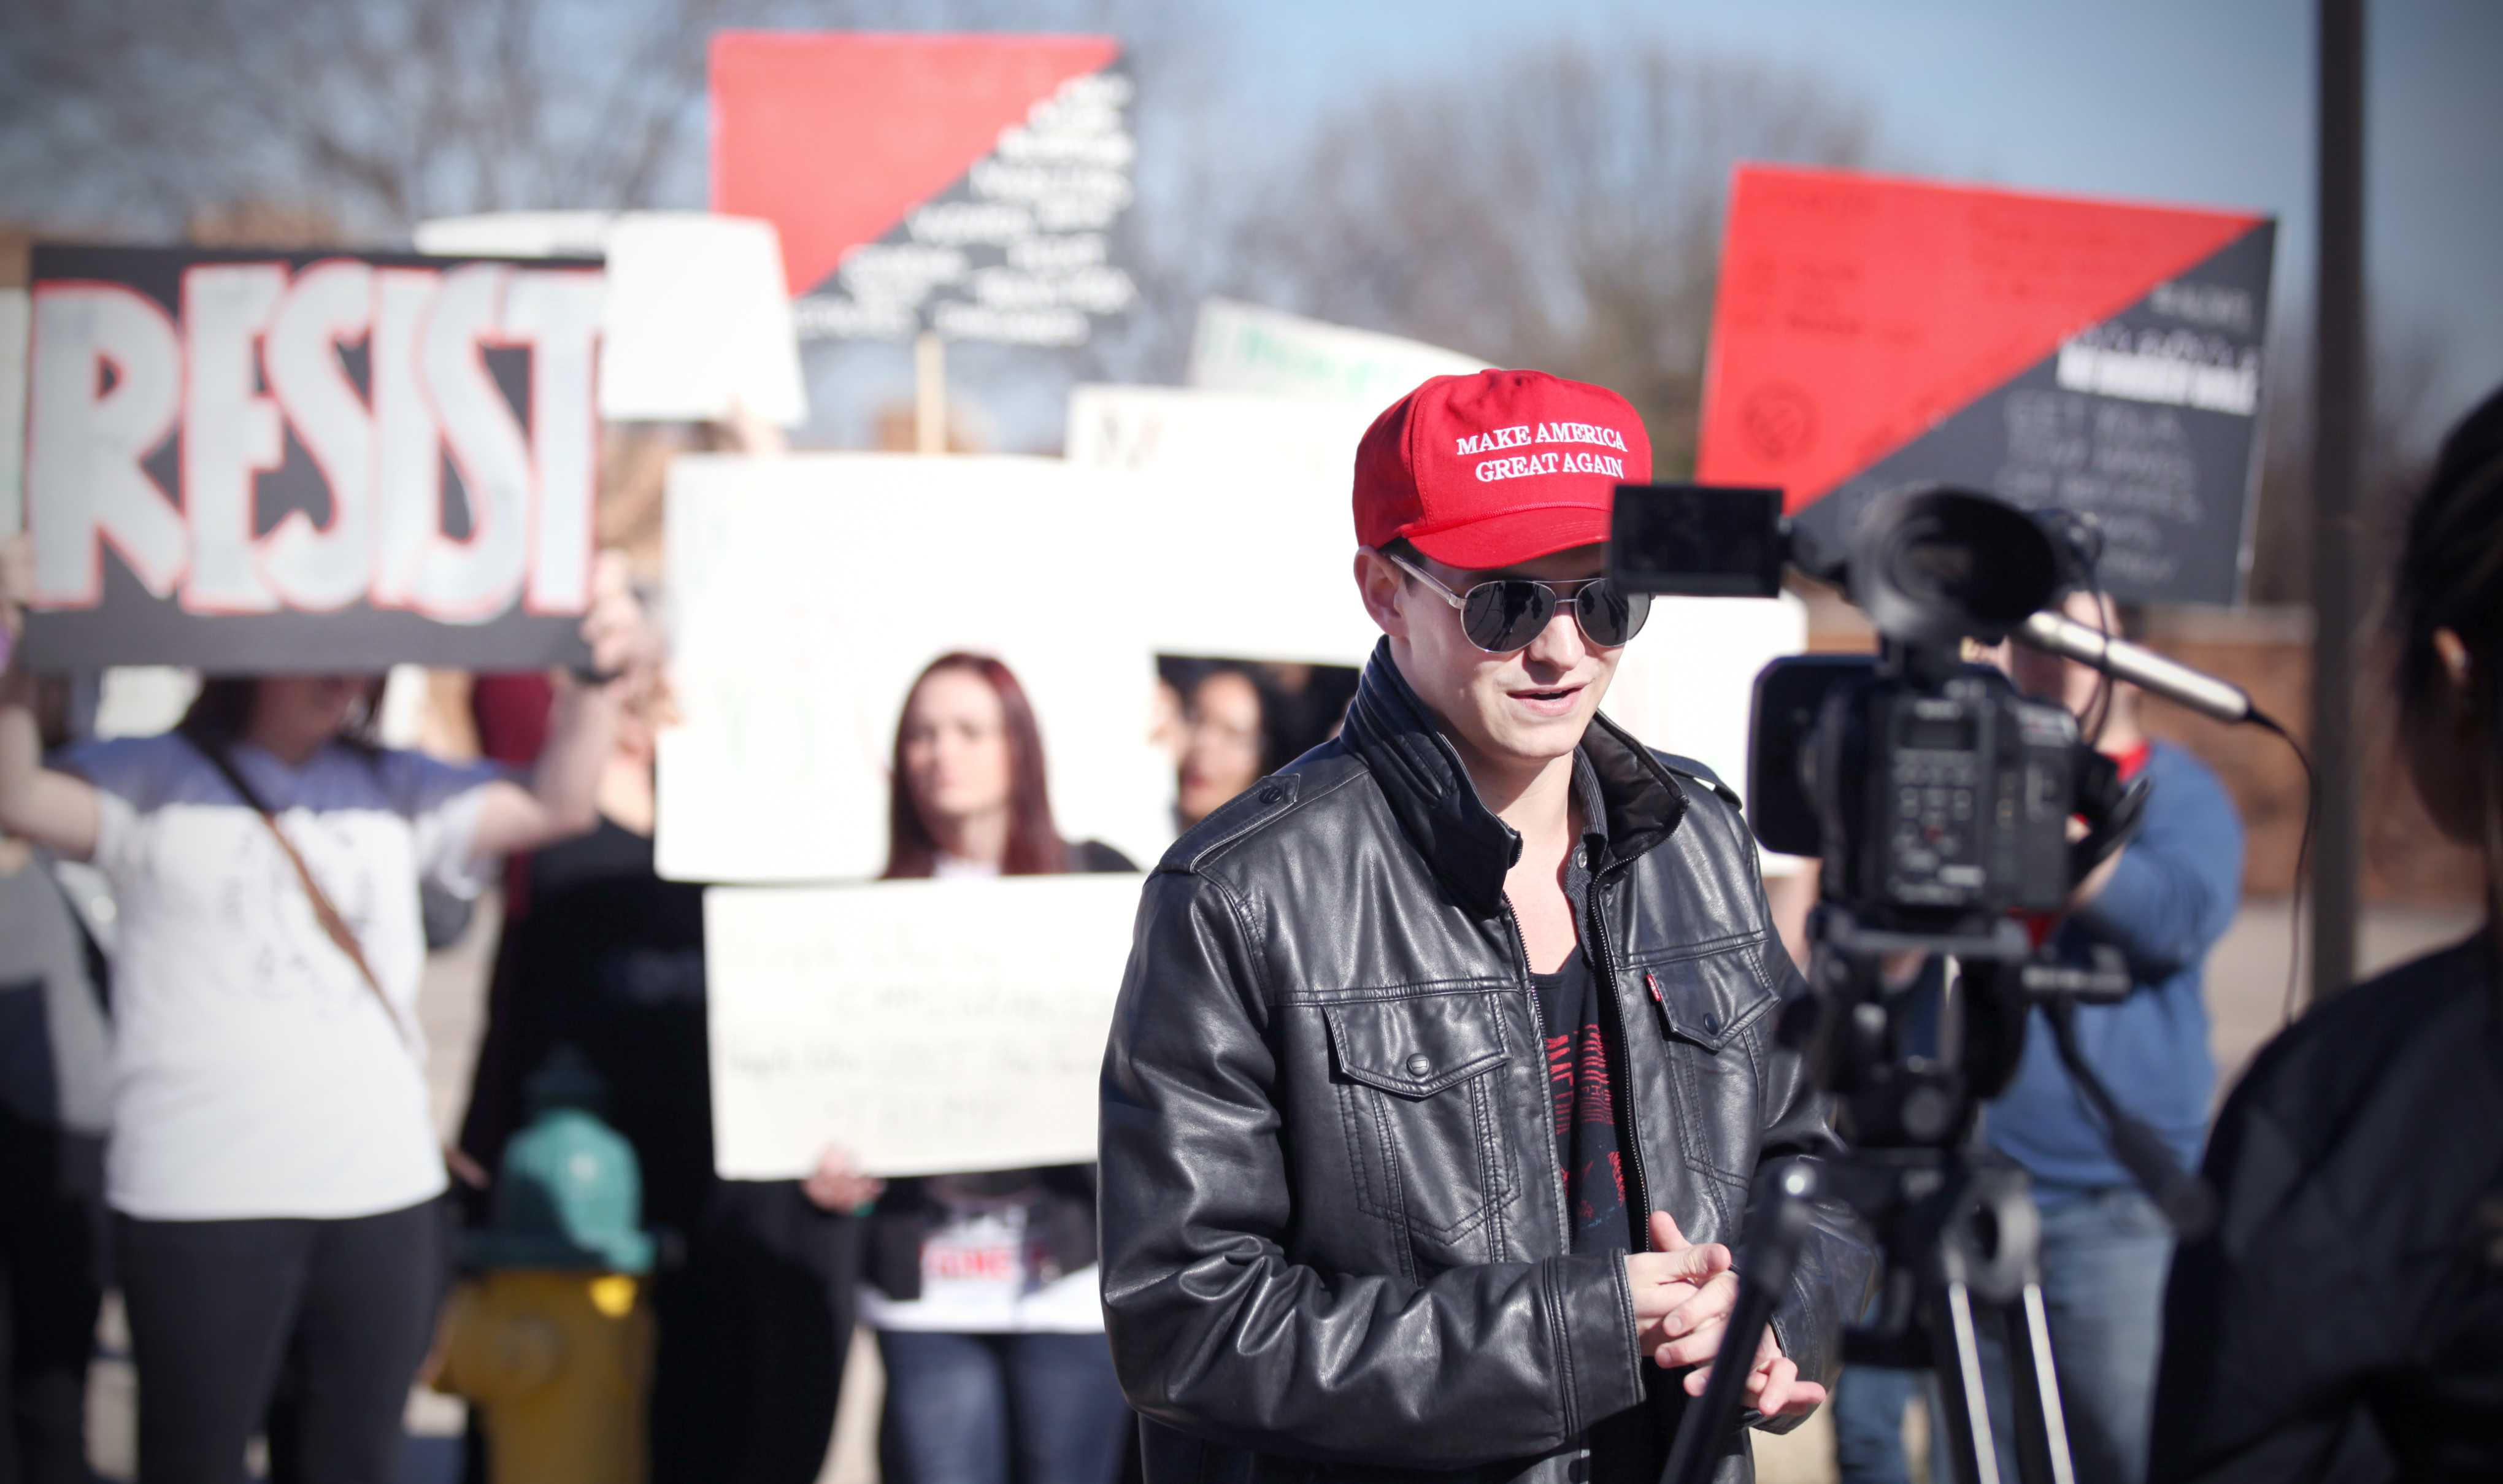 Brady Burross, mechanical engineering senior, speaking to the student media about why he thinks the immigration executive order is a good idea. In the background are ralliers silently protesting. The rally against the immigration executive order, on Feb. 1st. Photo by Bridget Reilly